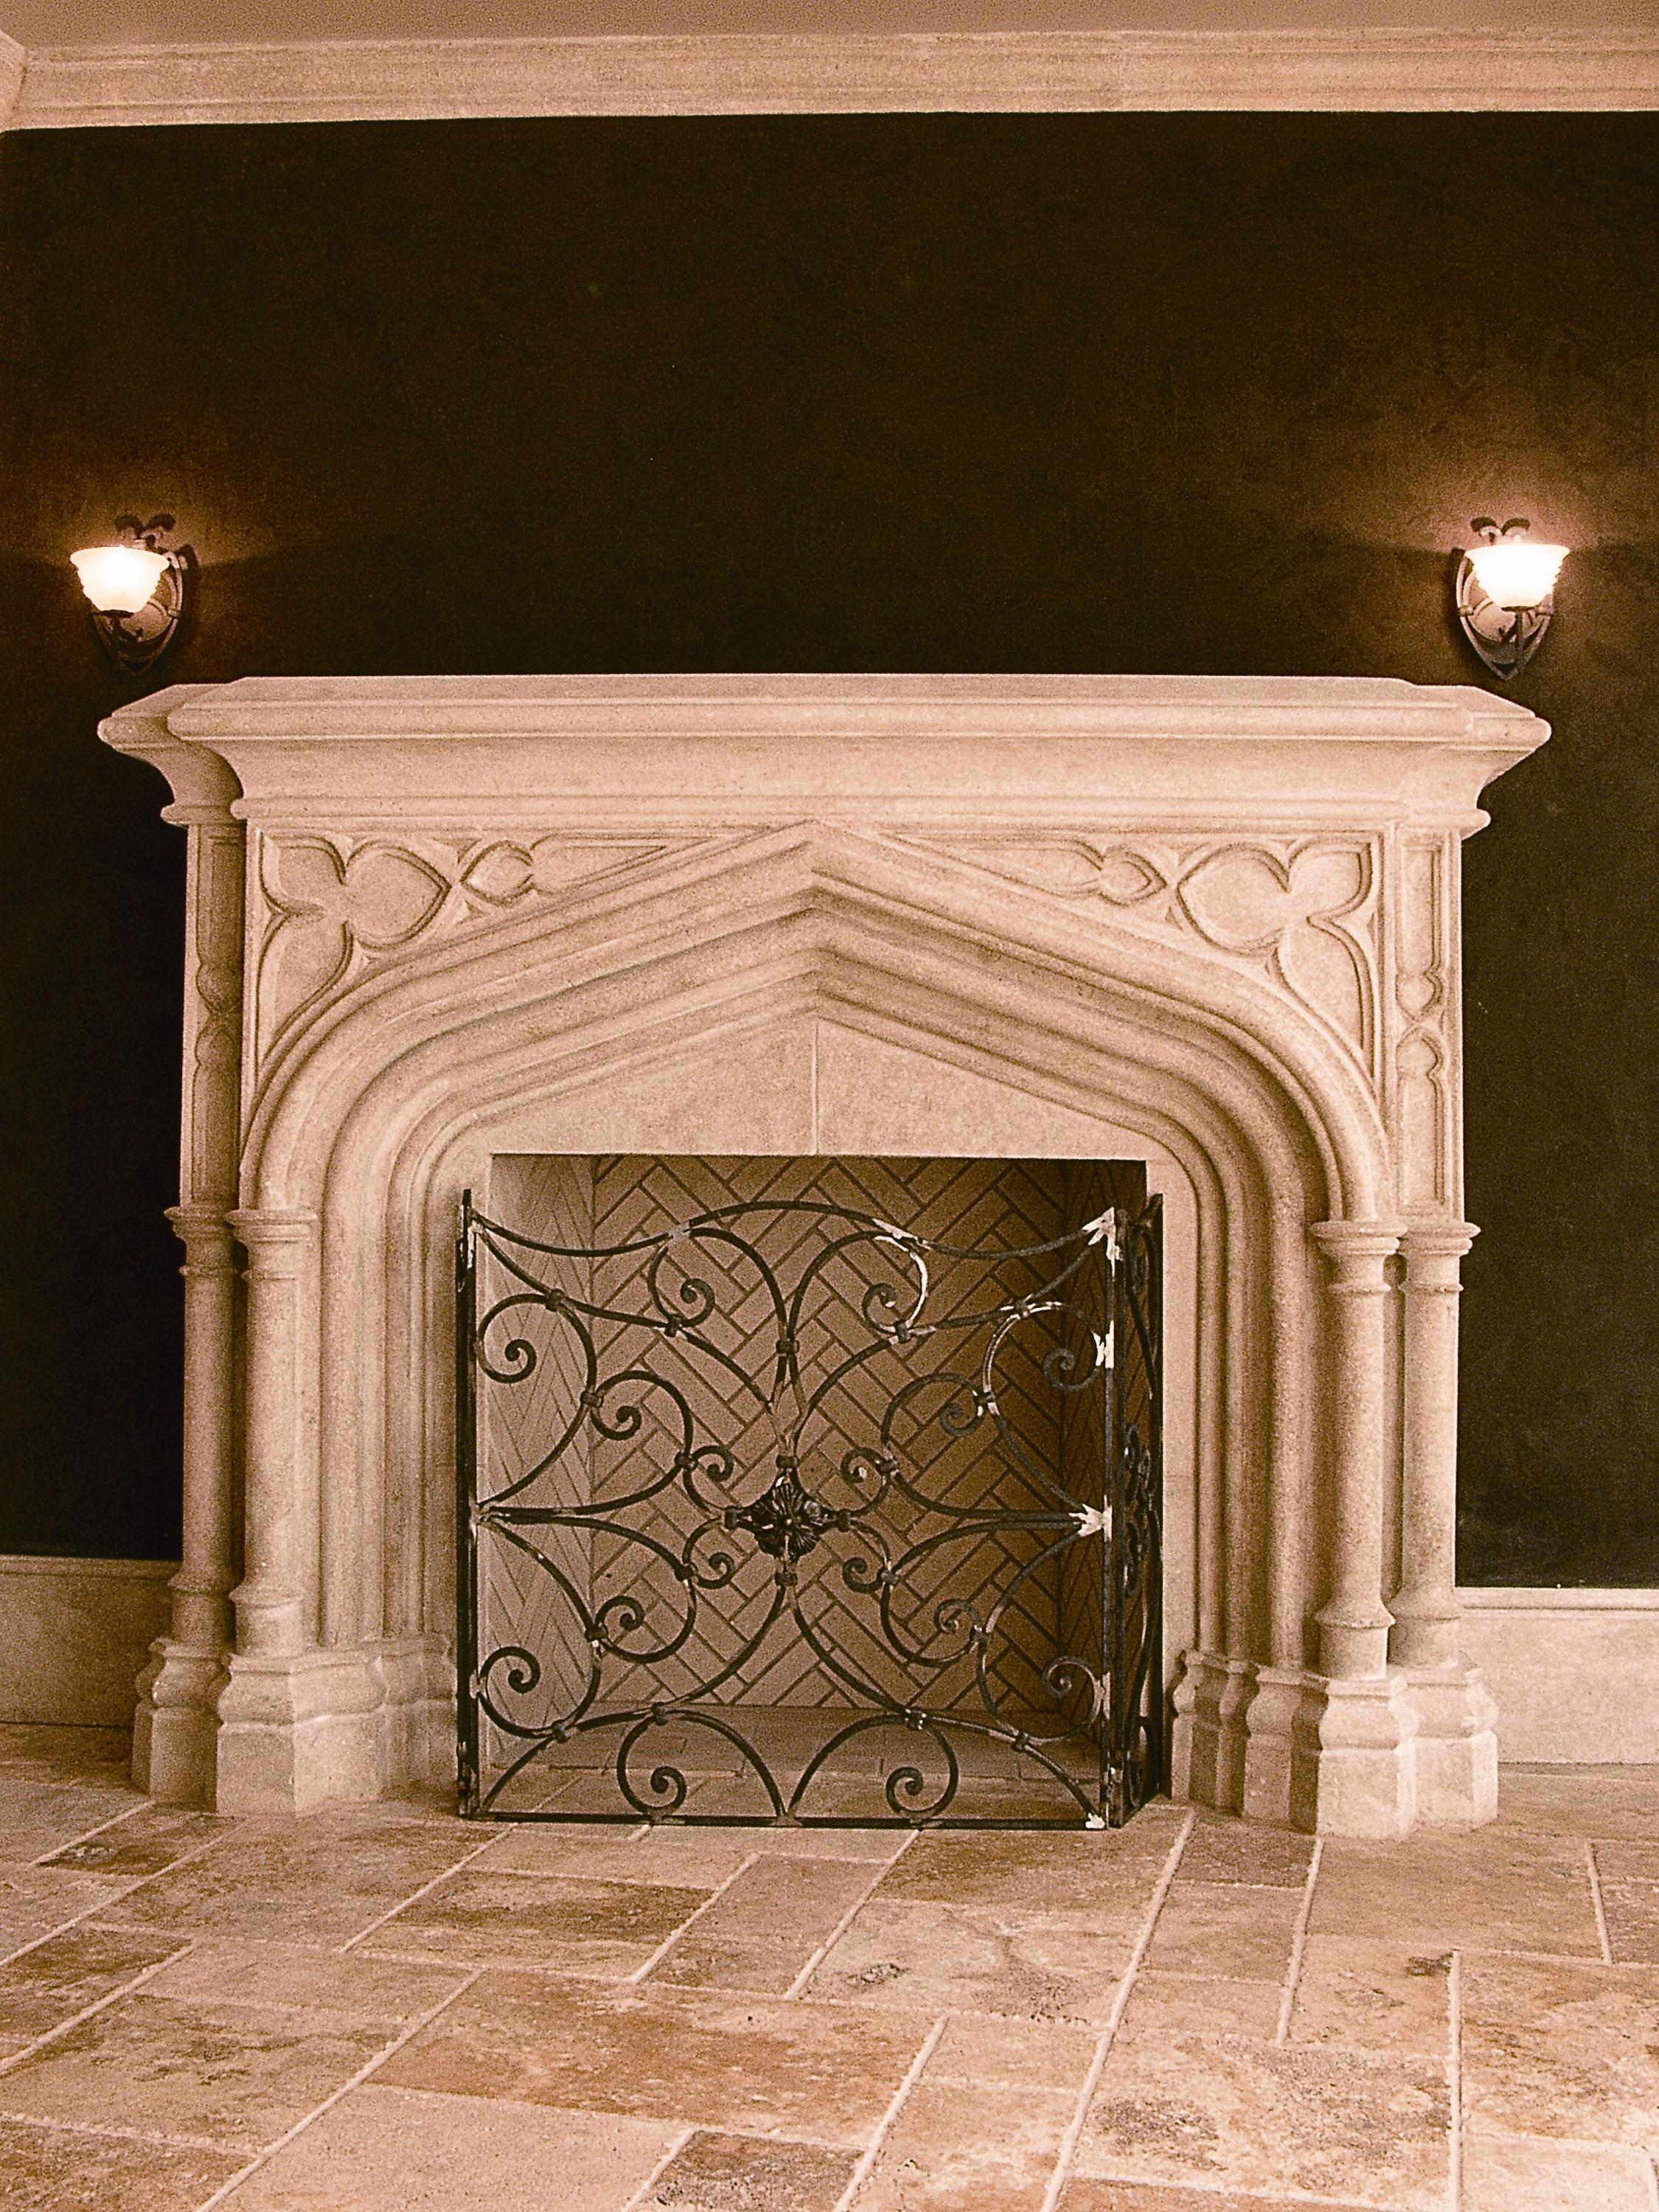 Stone Age Designs Recreates Old World European Fireplace